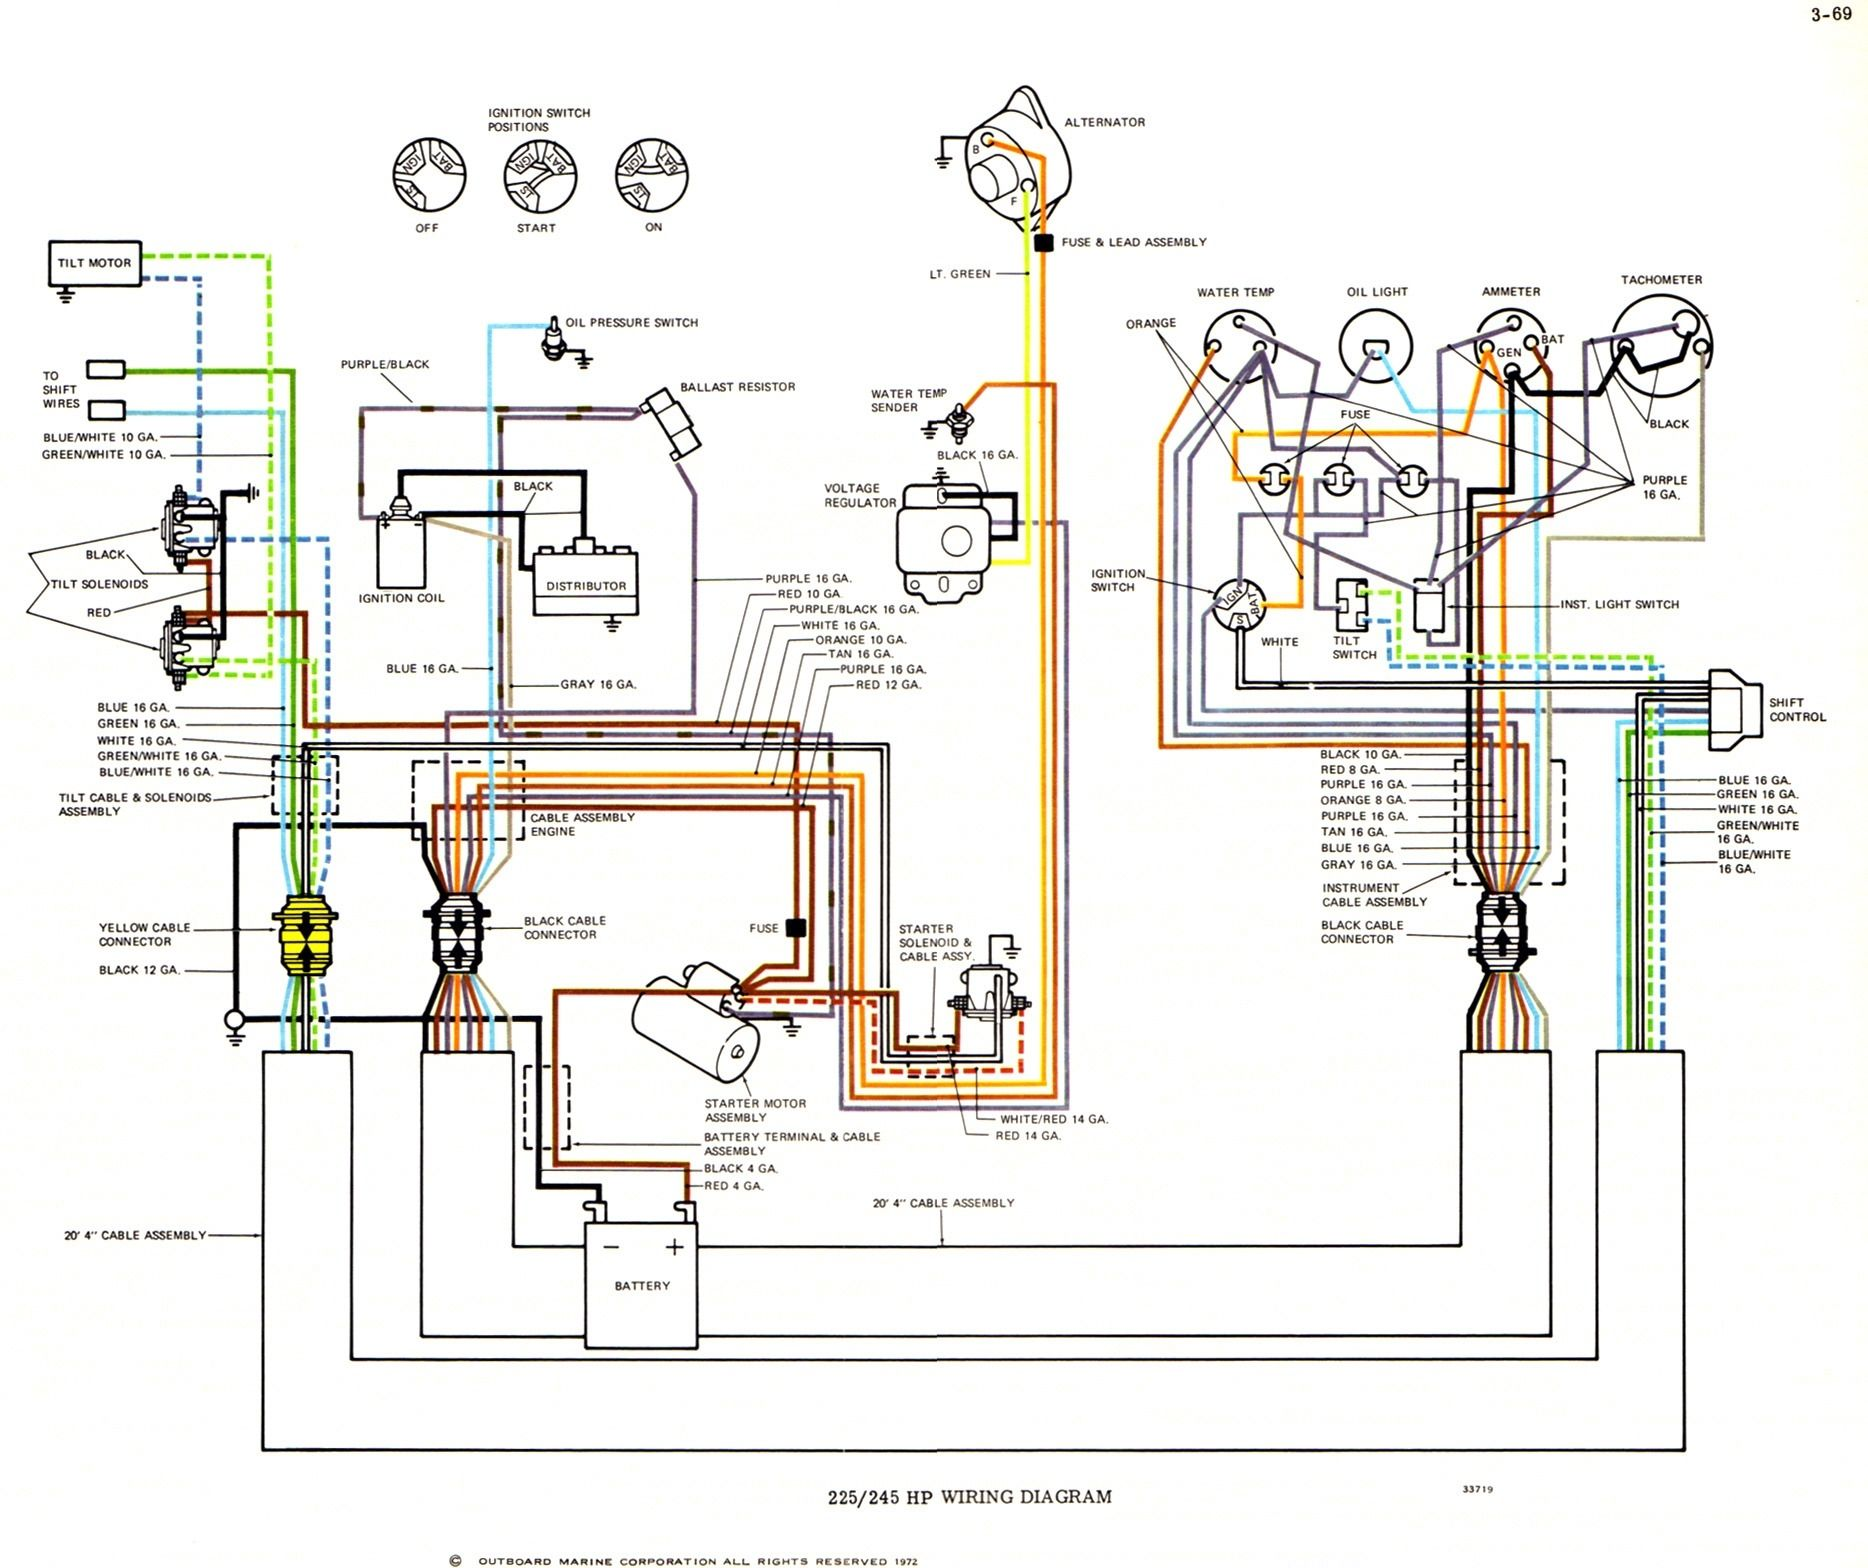 yamaha outboard electrical wiring diagram | wiringdiagram org